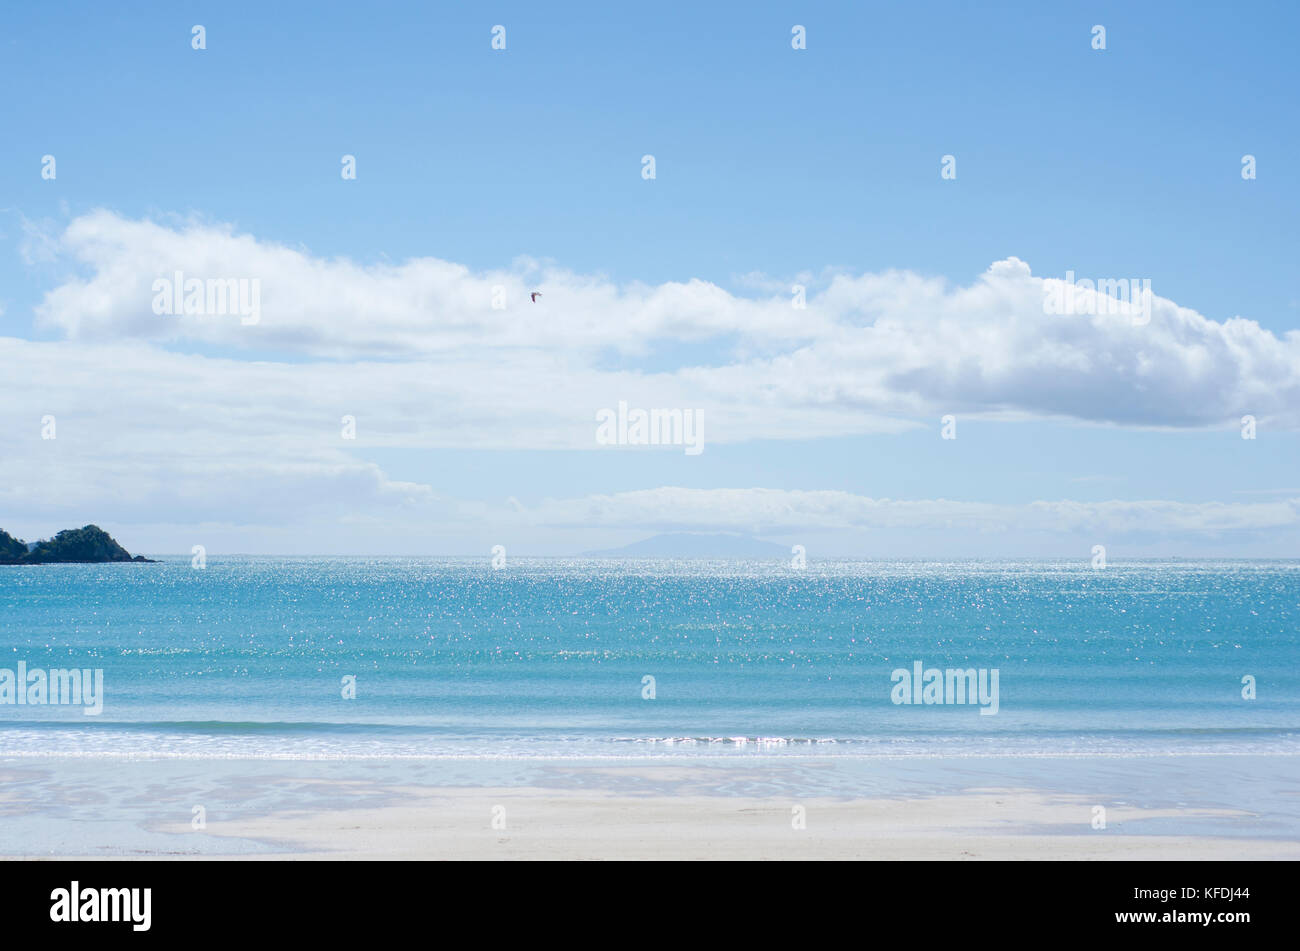 Little Oneroa beach in Waiheke Island, Hauraki Gulf, New Zealand - Stock Image